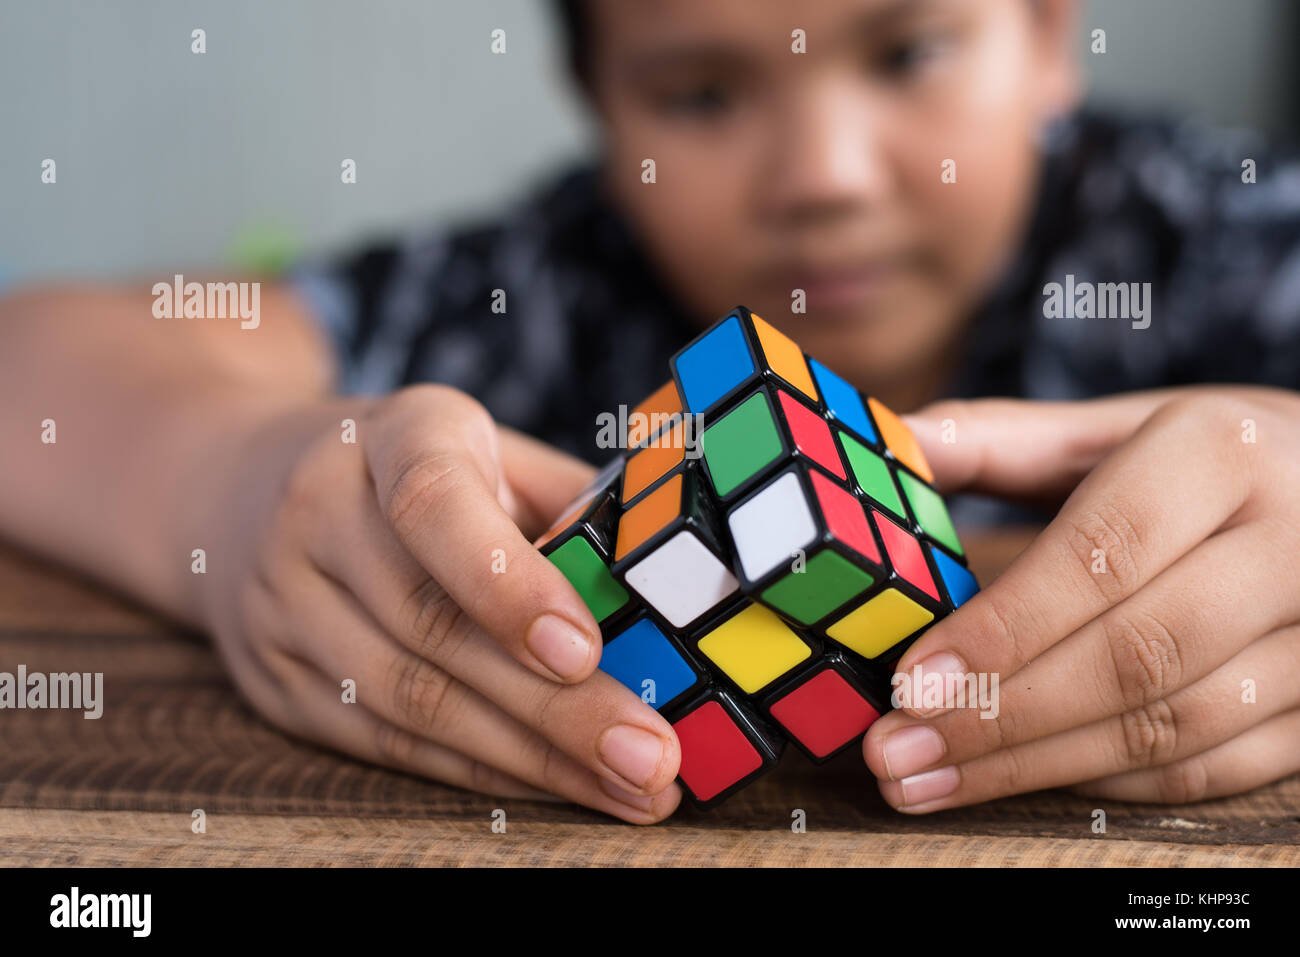 asian boy playing with rubik's cube.boy solving puzzle.brain teaser toy - Stock Image